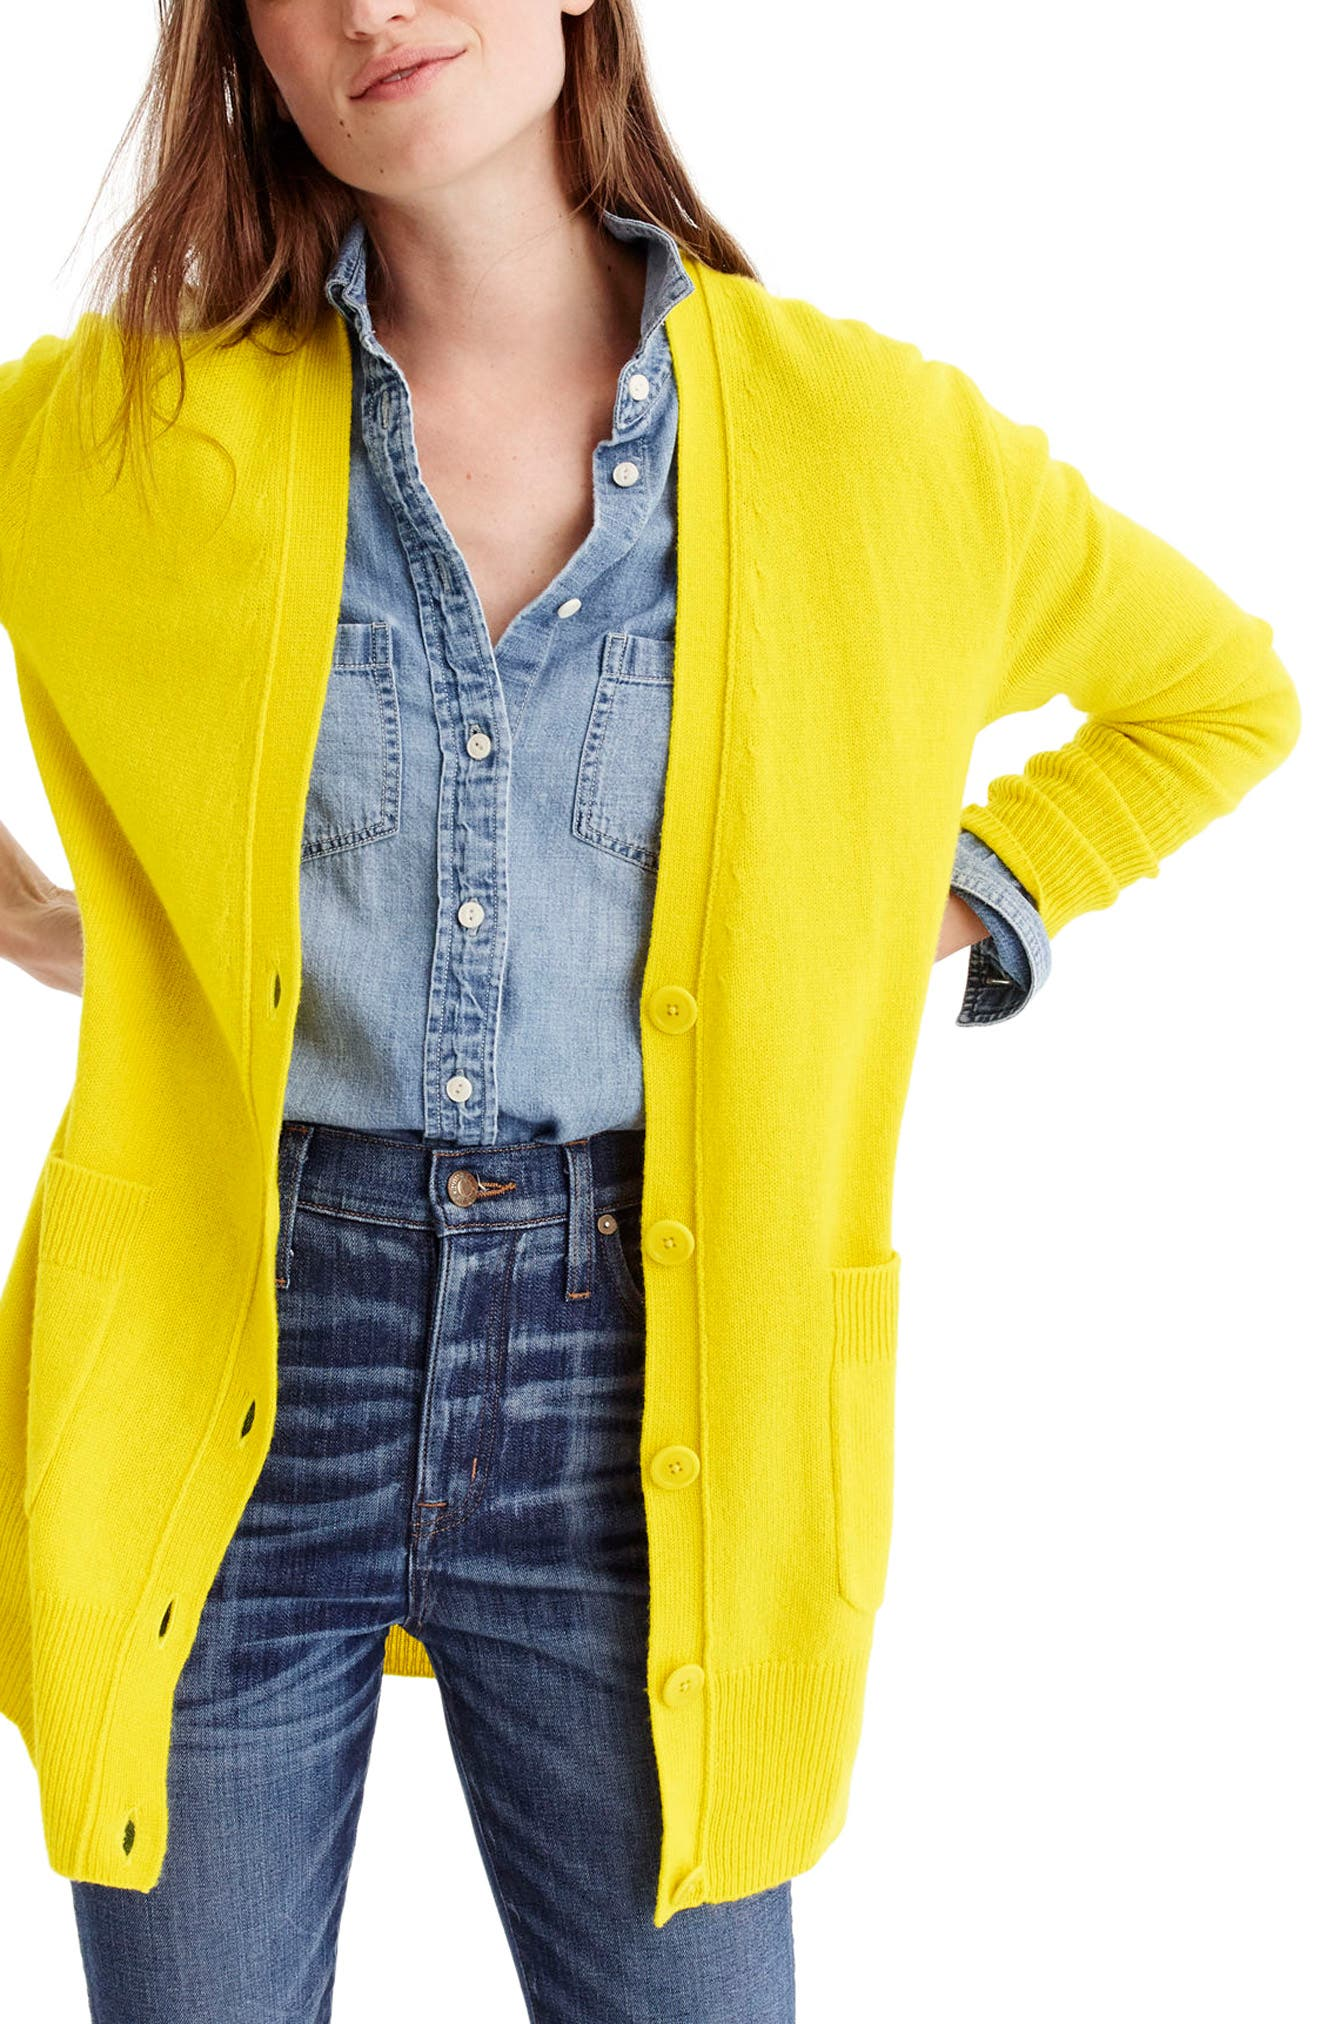 Alternate Image 1 Selected - J.Crew Oversize Wool Blend Cardigan